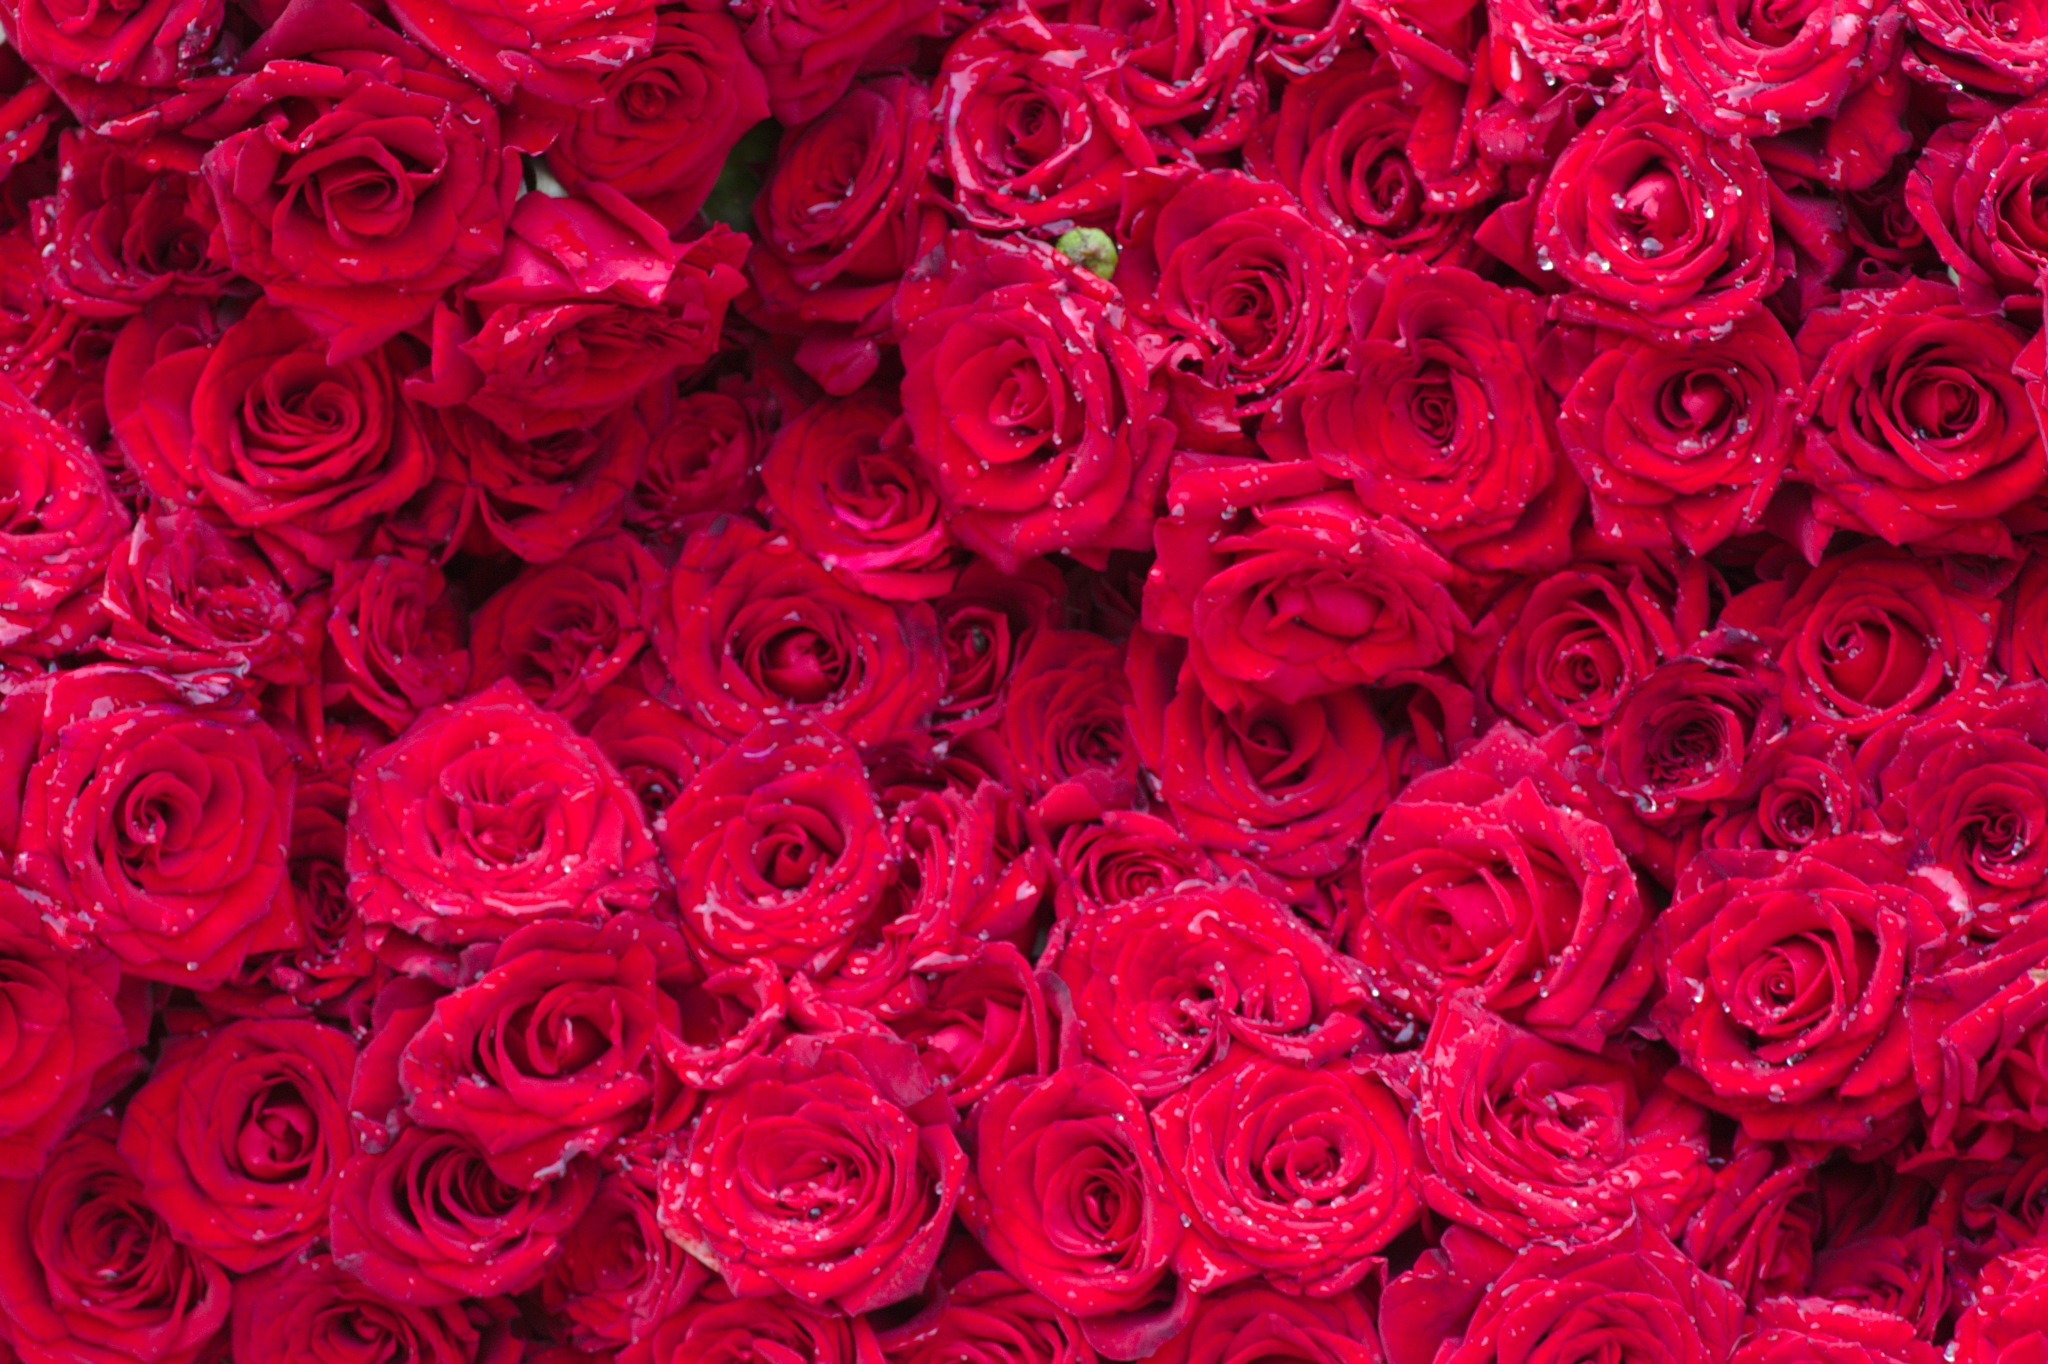 Wall of wet red roses by Guruprasad B. Gopinath